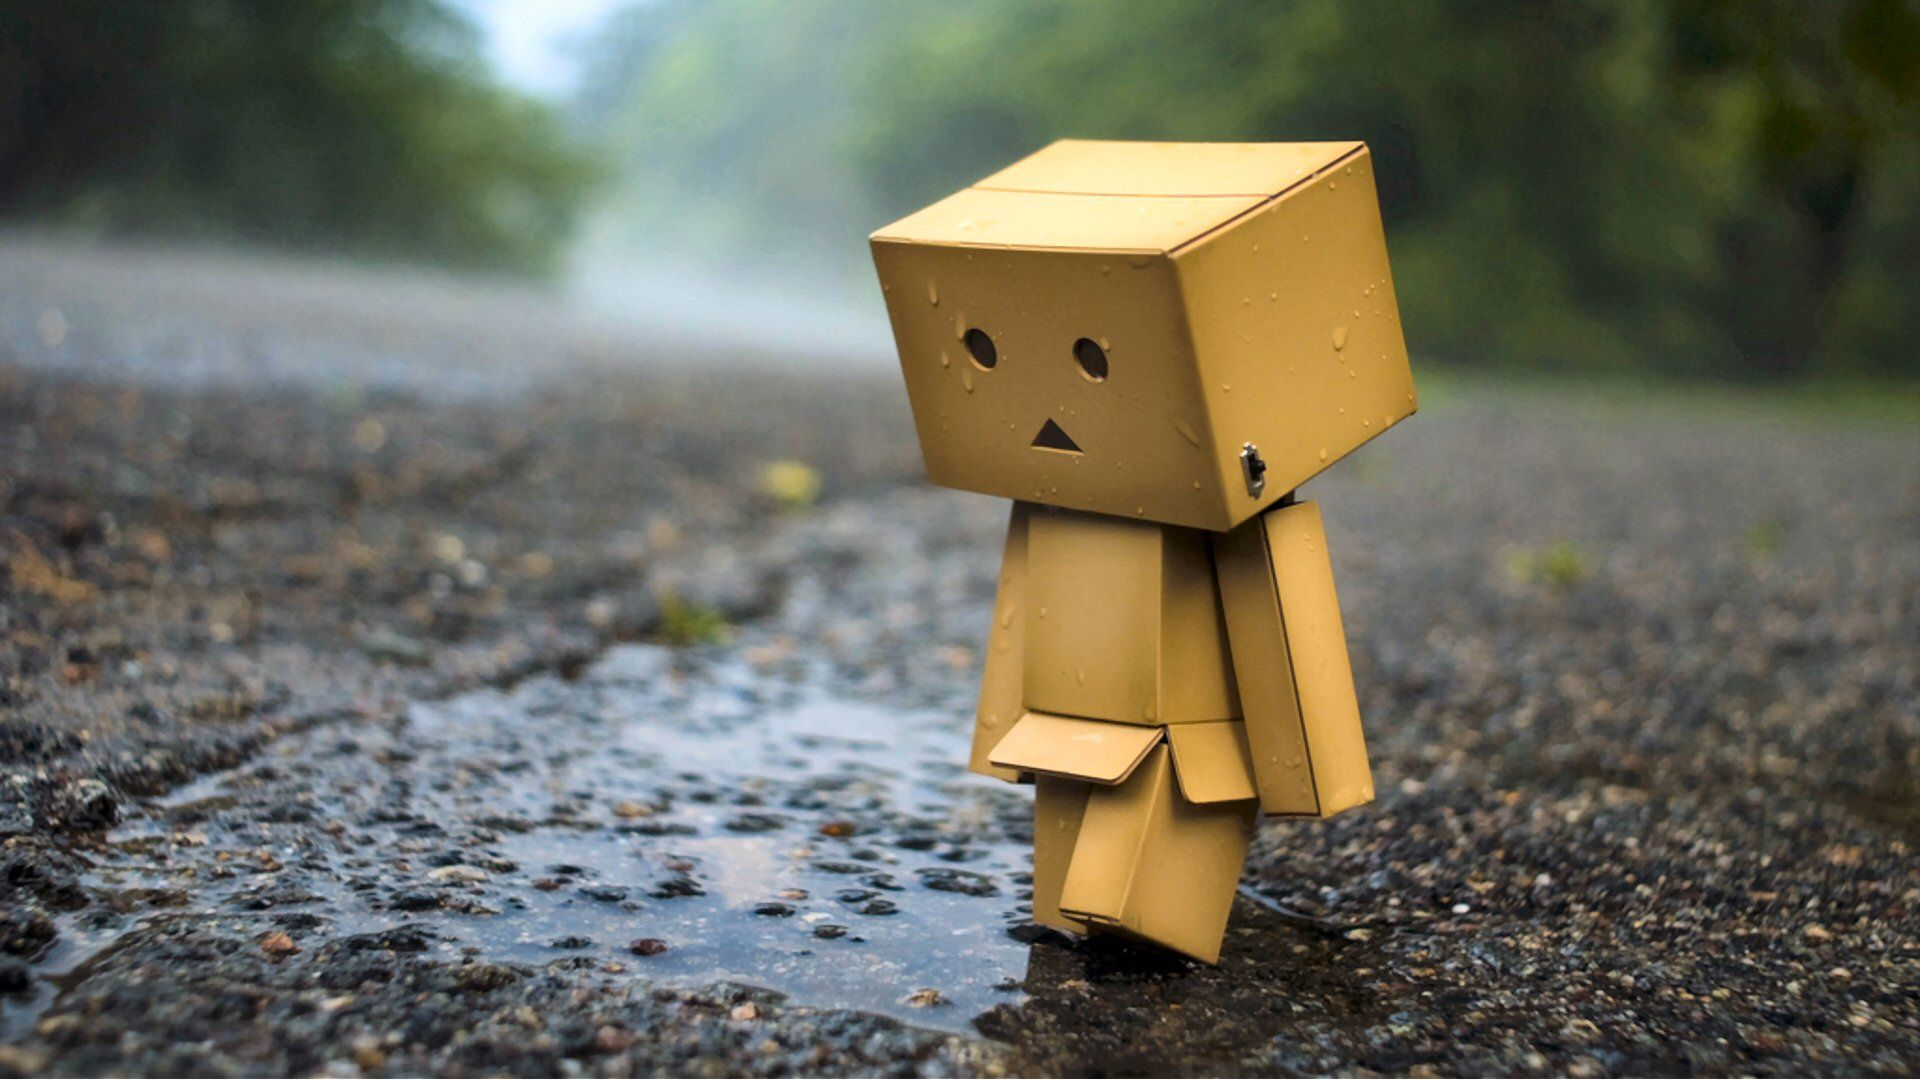 Danbo Wallpapers 1920x1080 874VC8G   4USkY 1920x1080